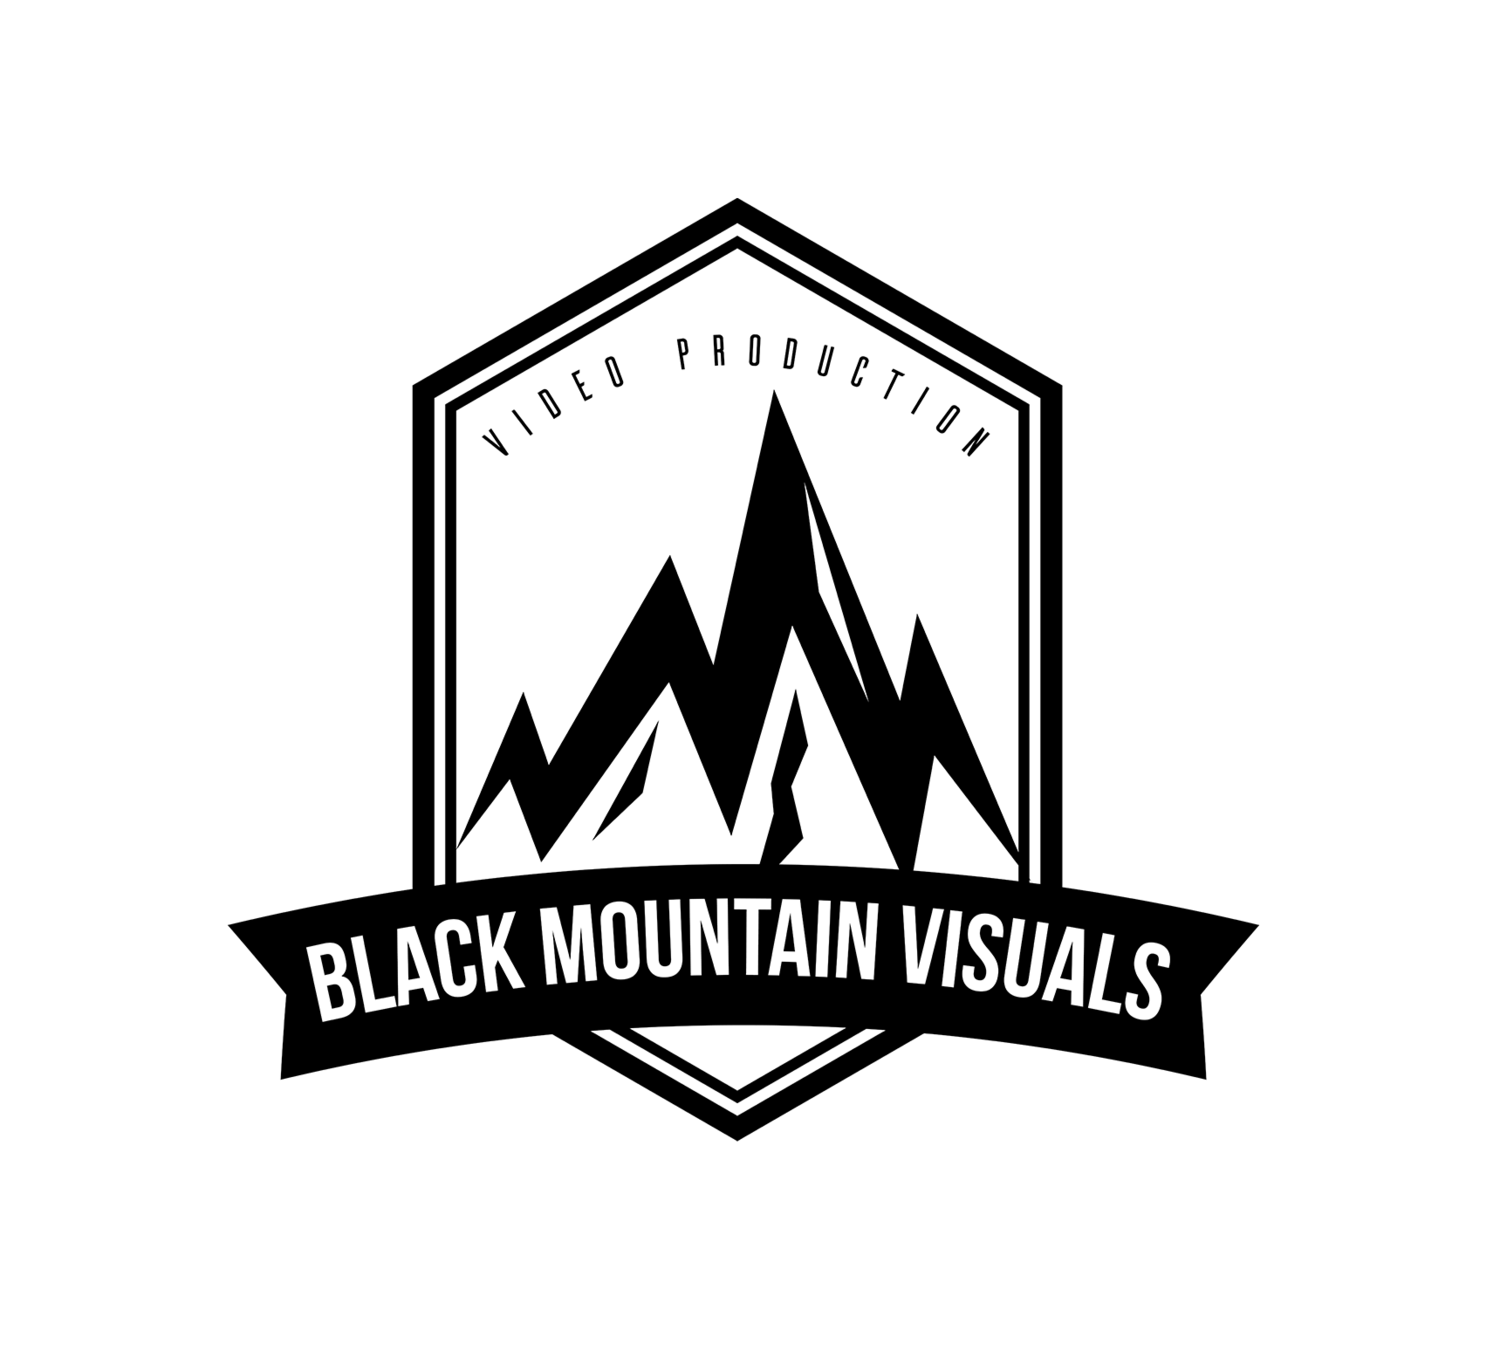 Black Mountain Visuals